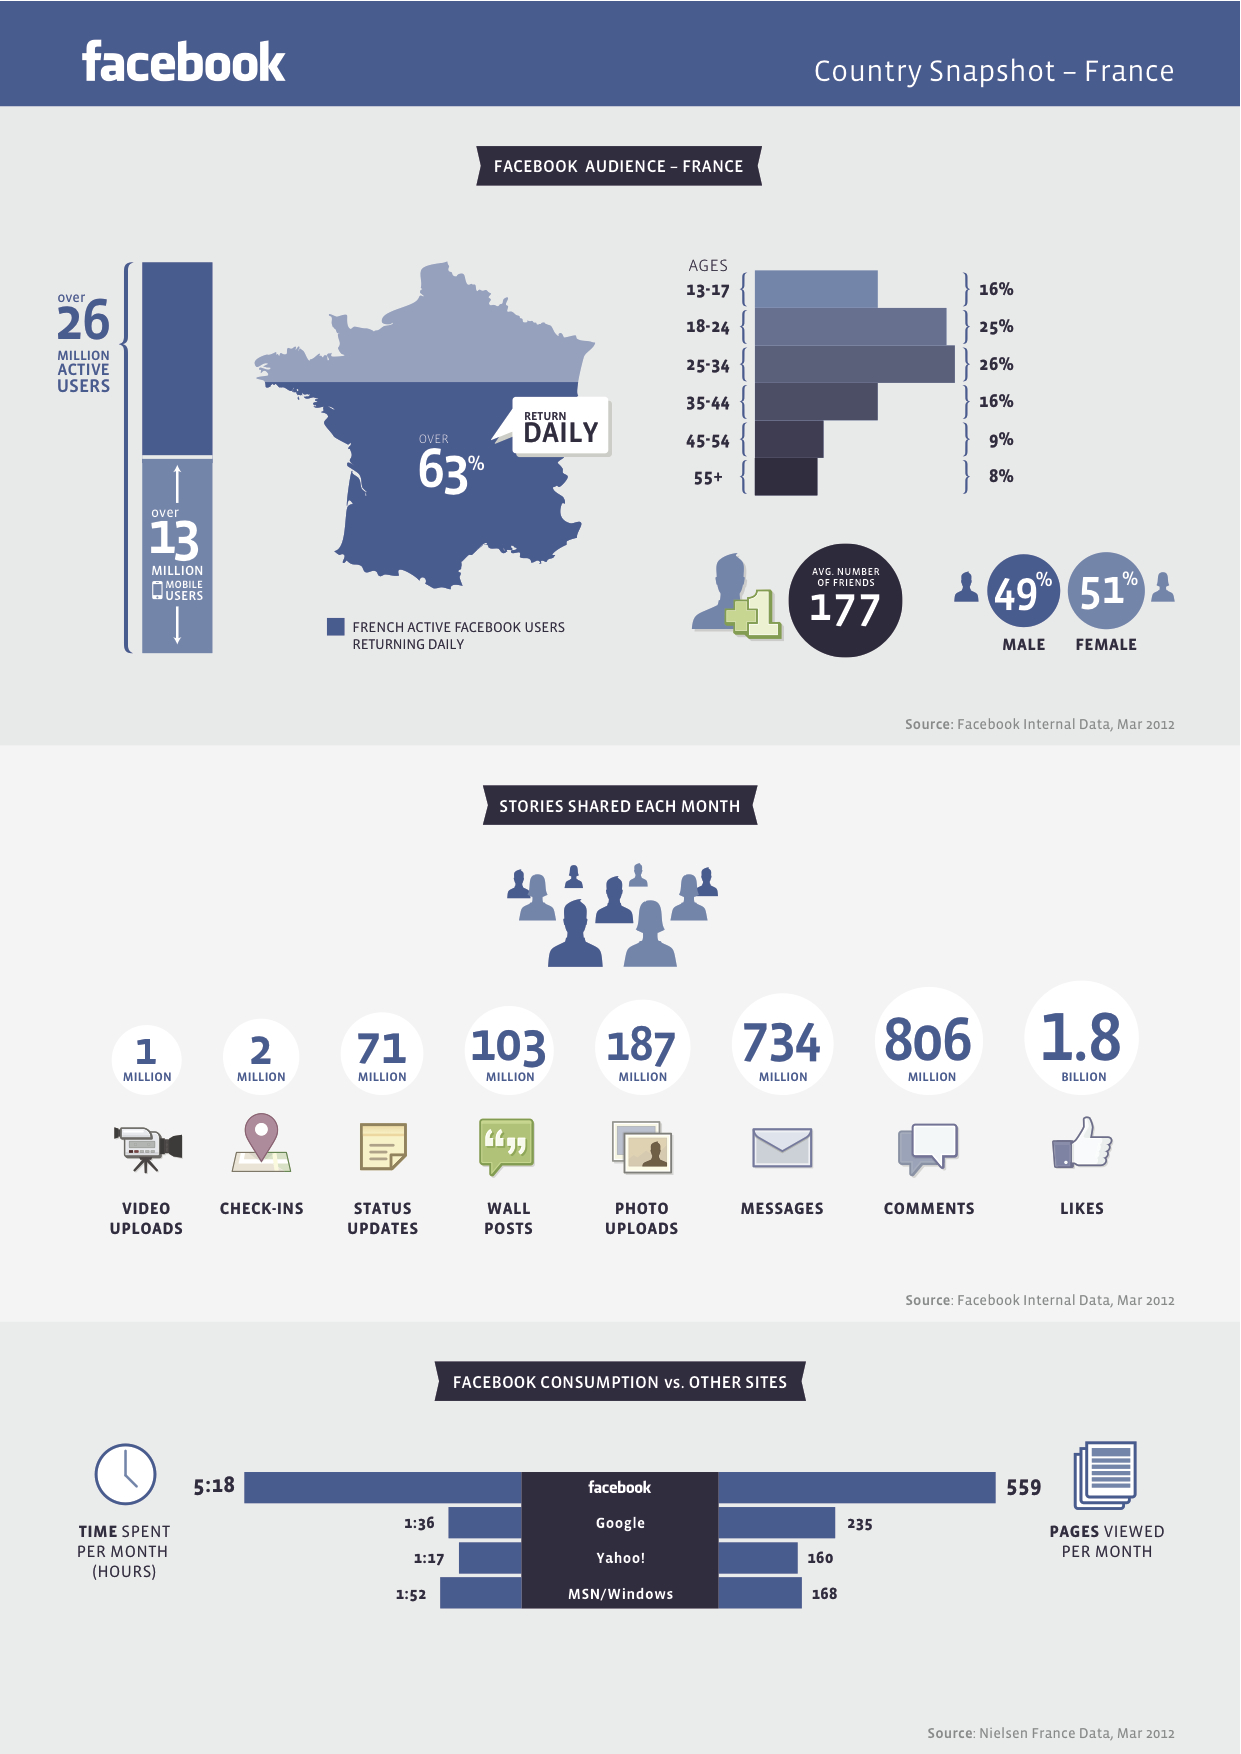 Chiffres de Facebook en France, mars 2012